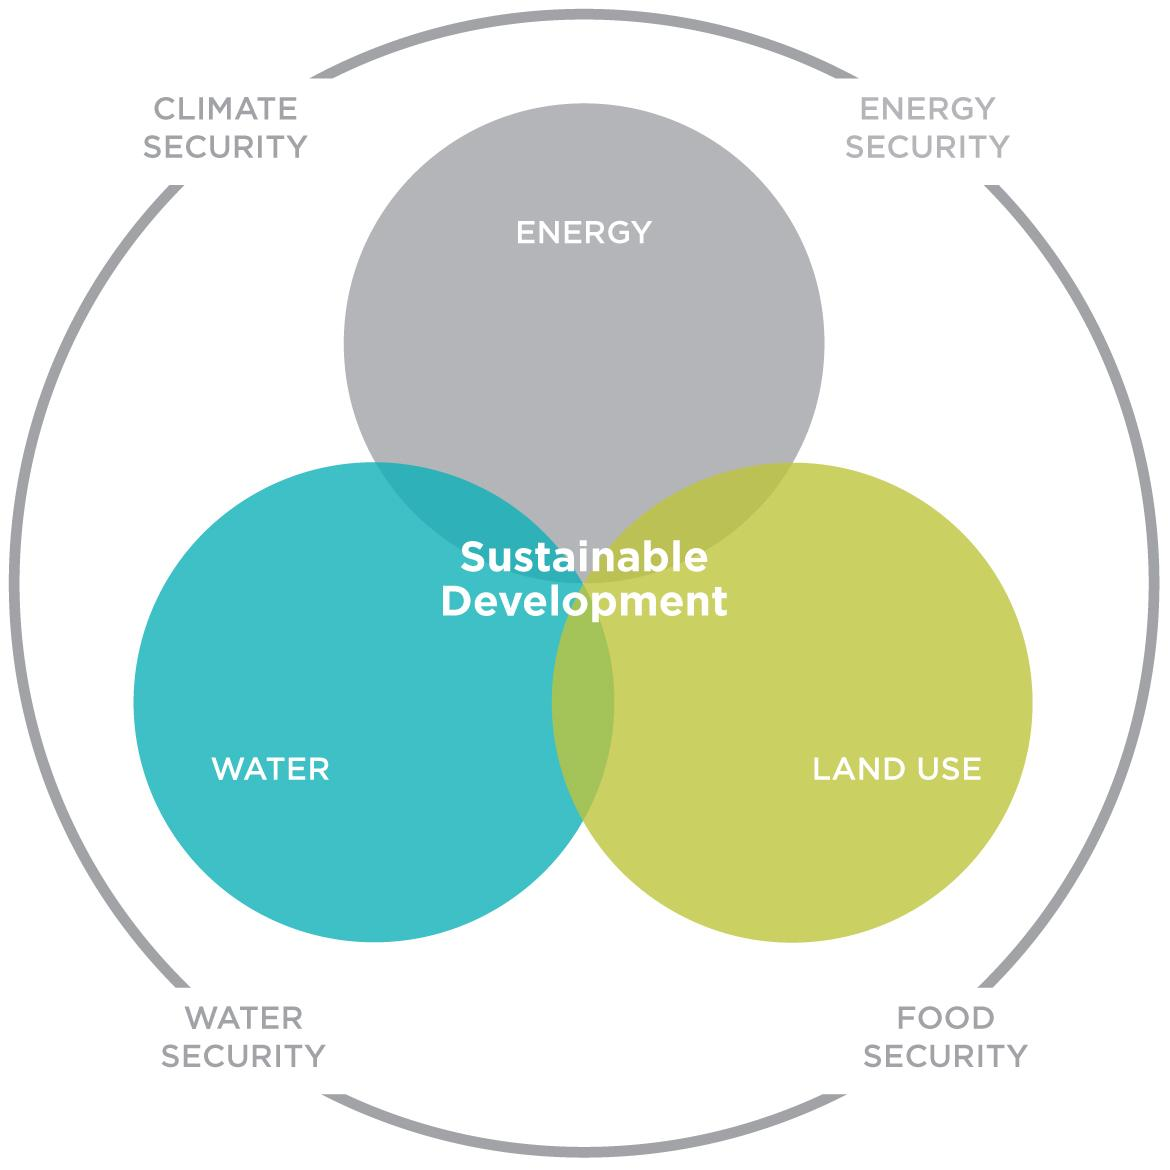 sustinable developmen Sustainable development is development that meets the needs of the present  without compromising the ability of future generations to meet their own needs.